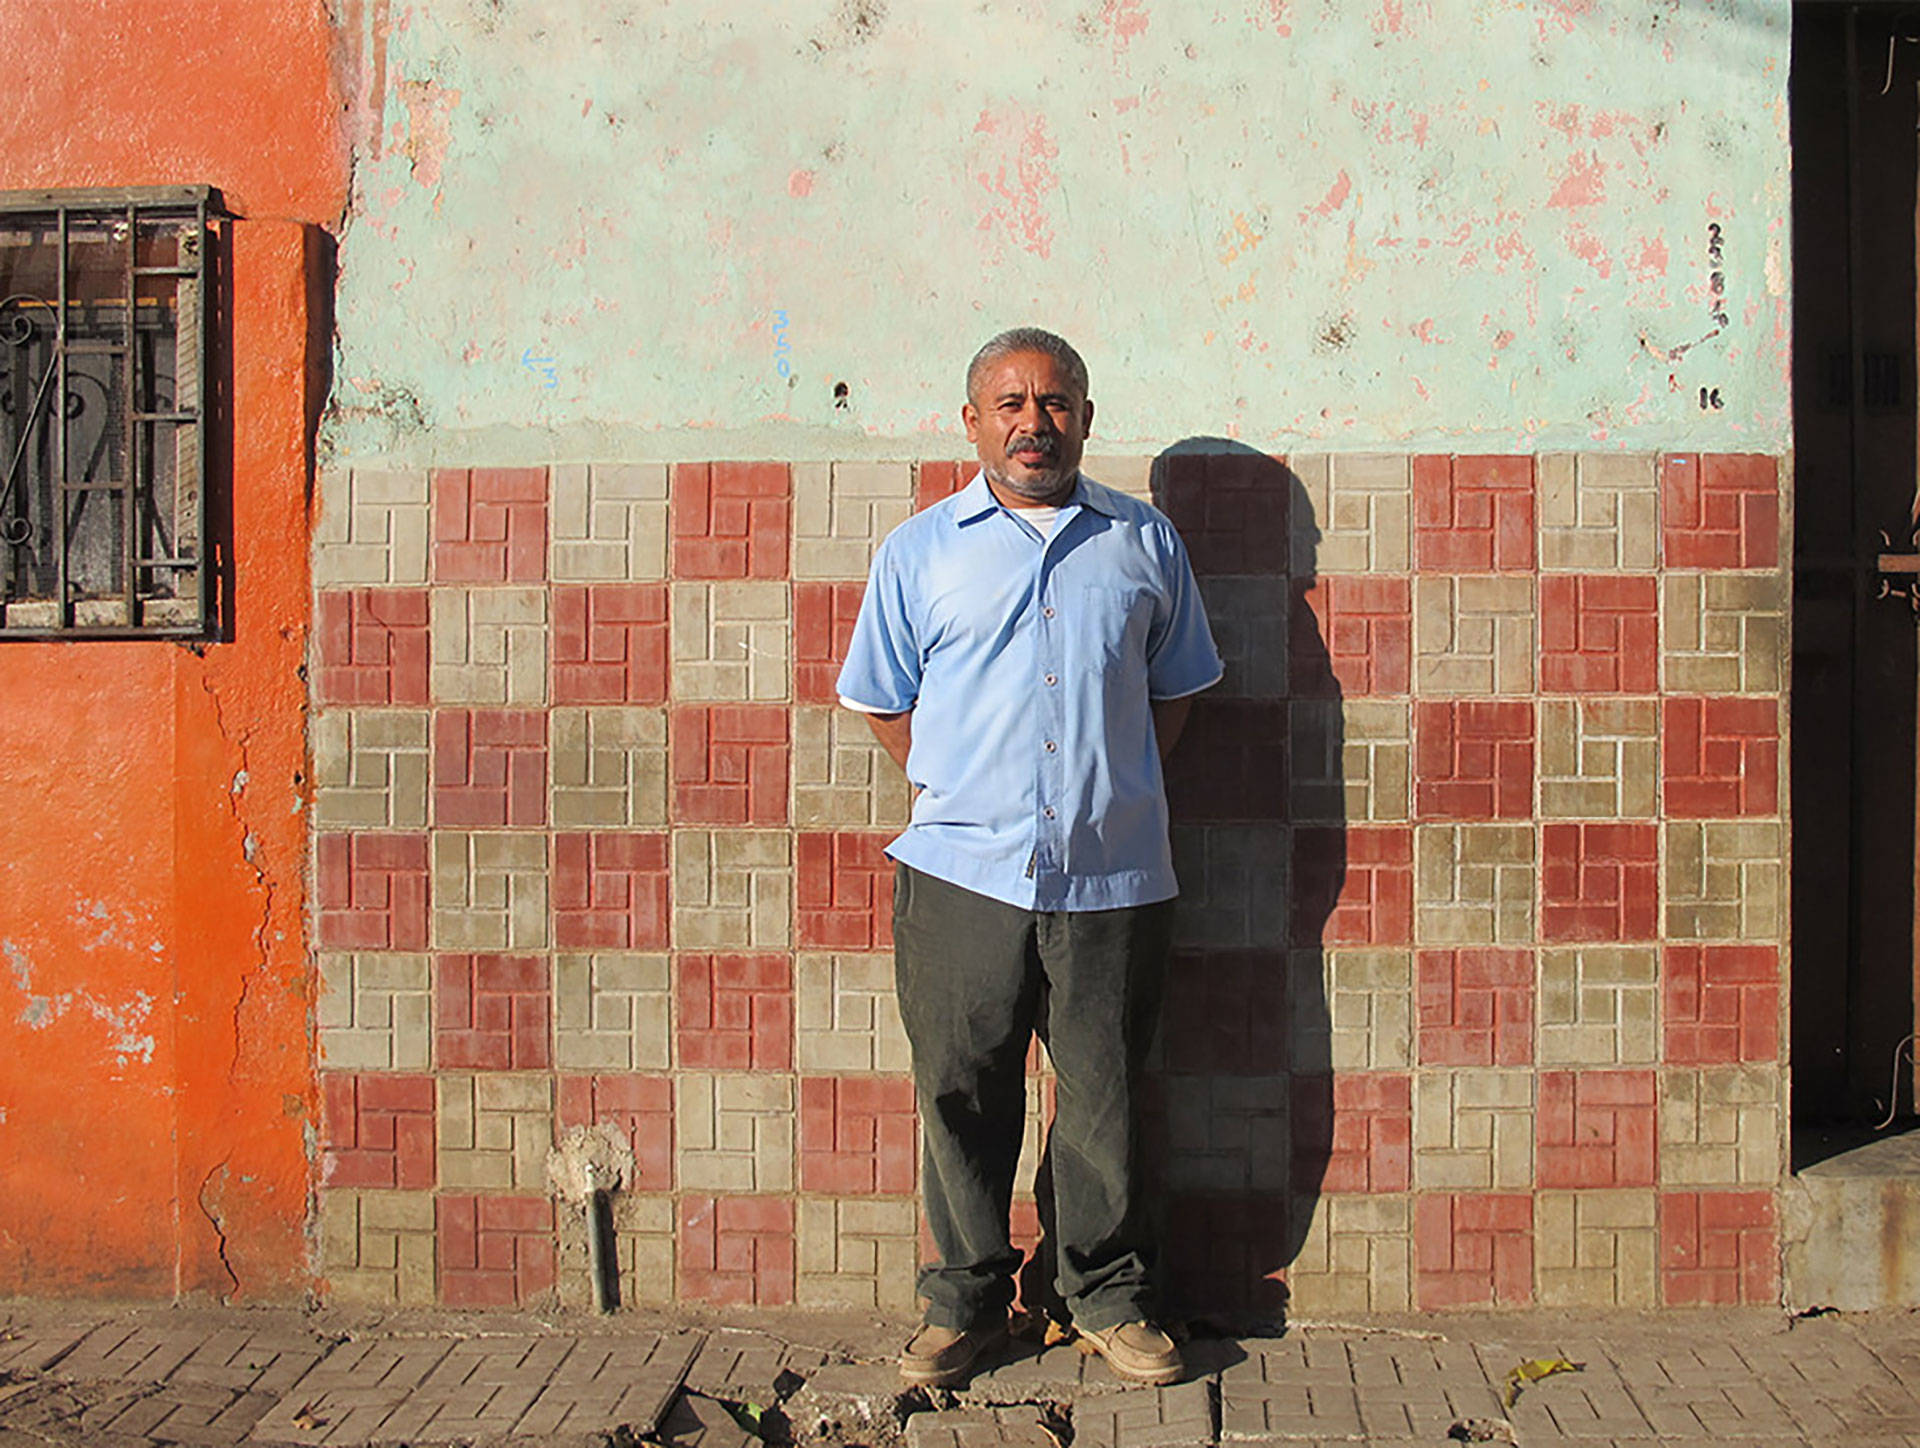 Juan Vicente in front of his grandparents' old home in Santa Ana, El Salvador. Vicente fled El Salvador's civil war in 1981 and sought refuge with his family in Bell Gardens, California. He was deported to El Salvador more than three decades later.  Levi Bridges/KQED